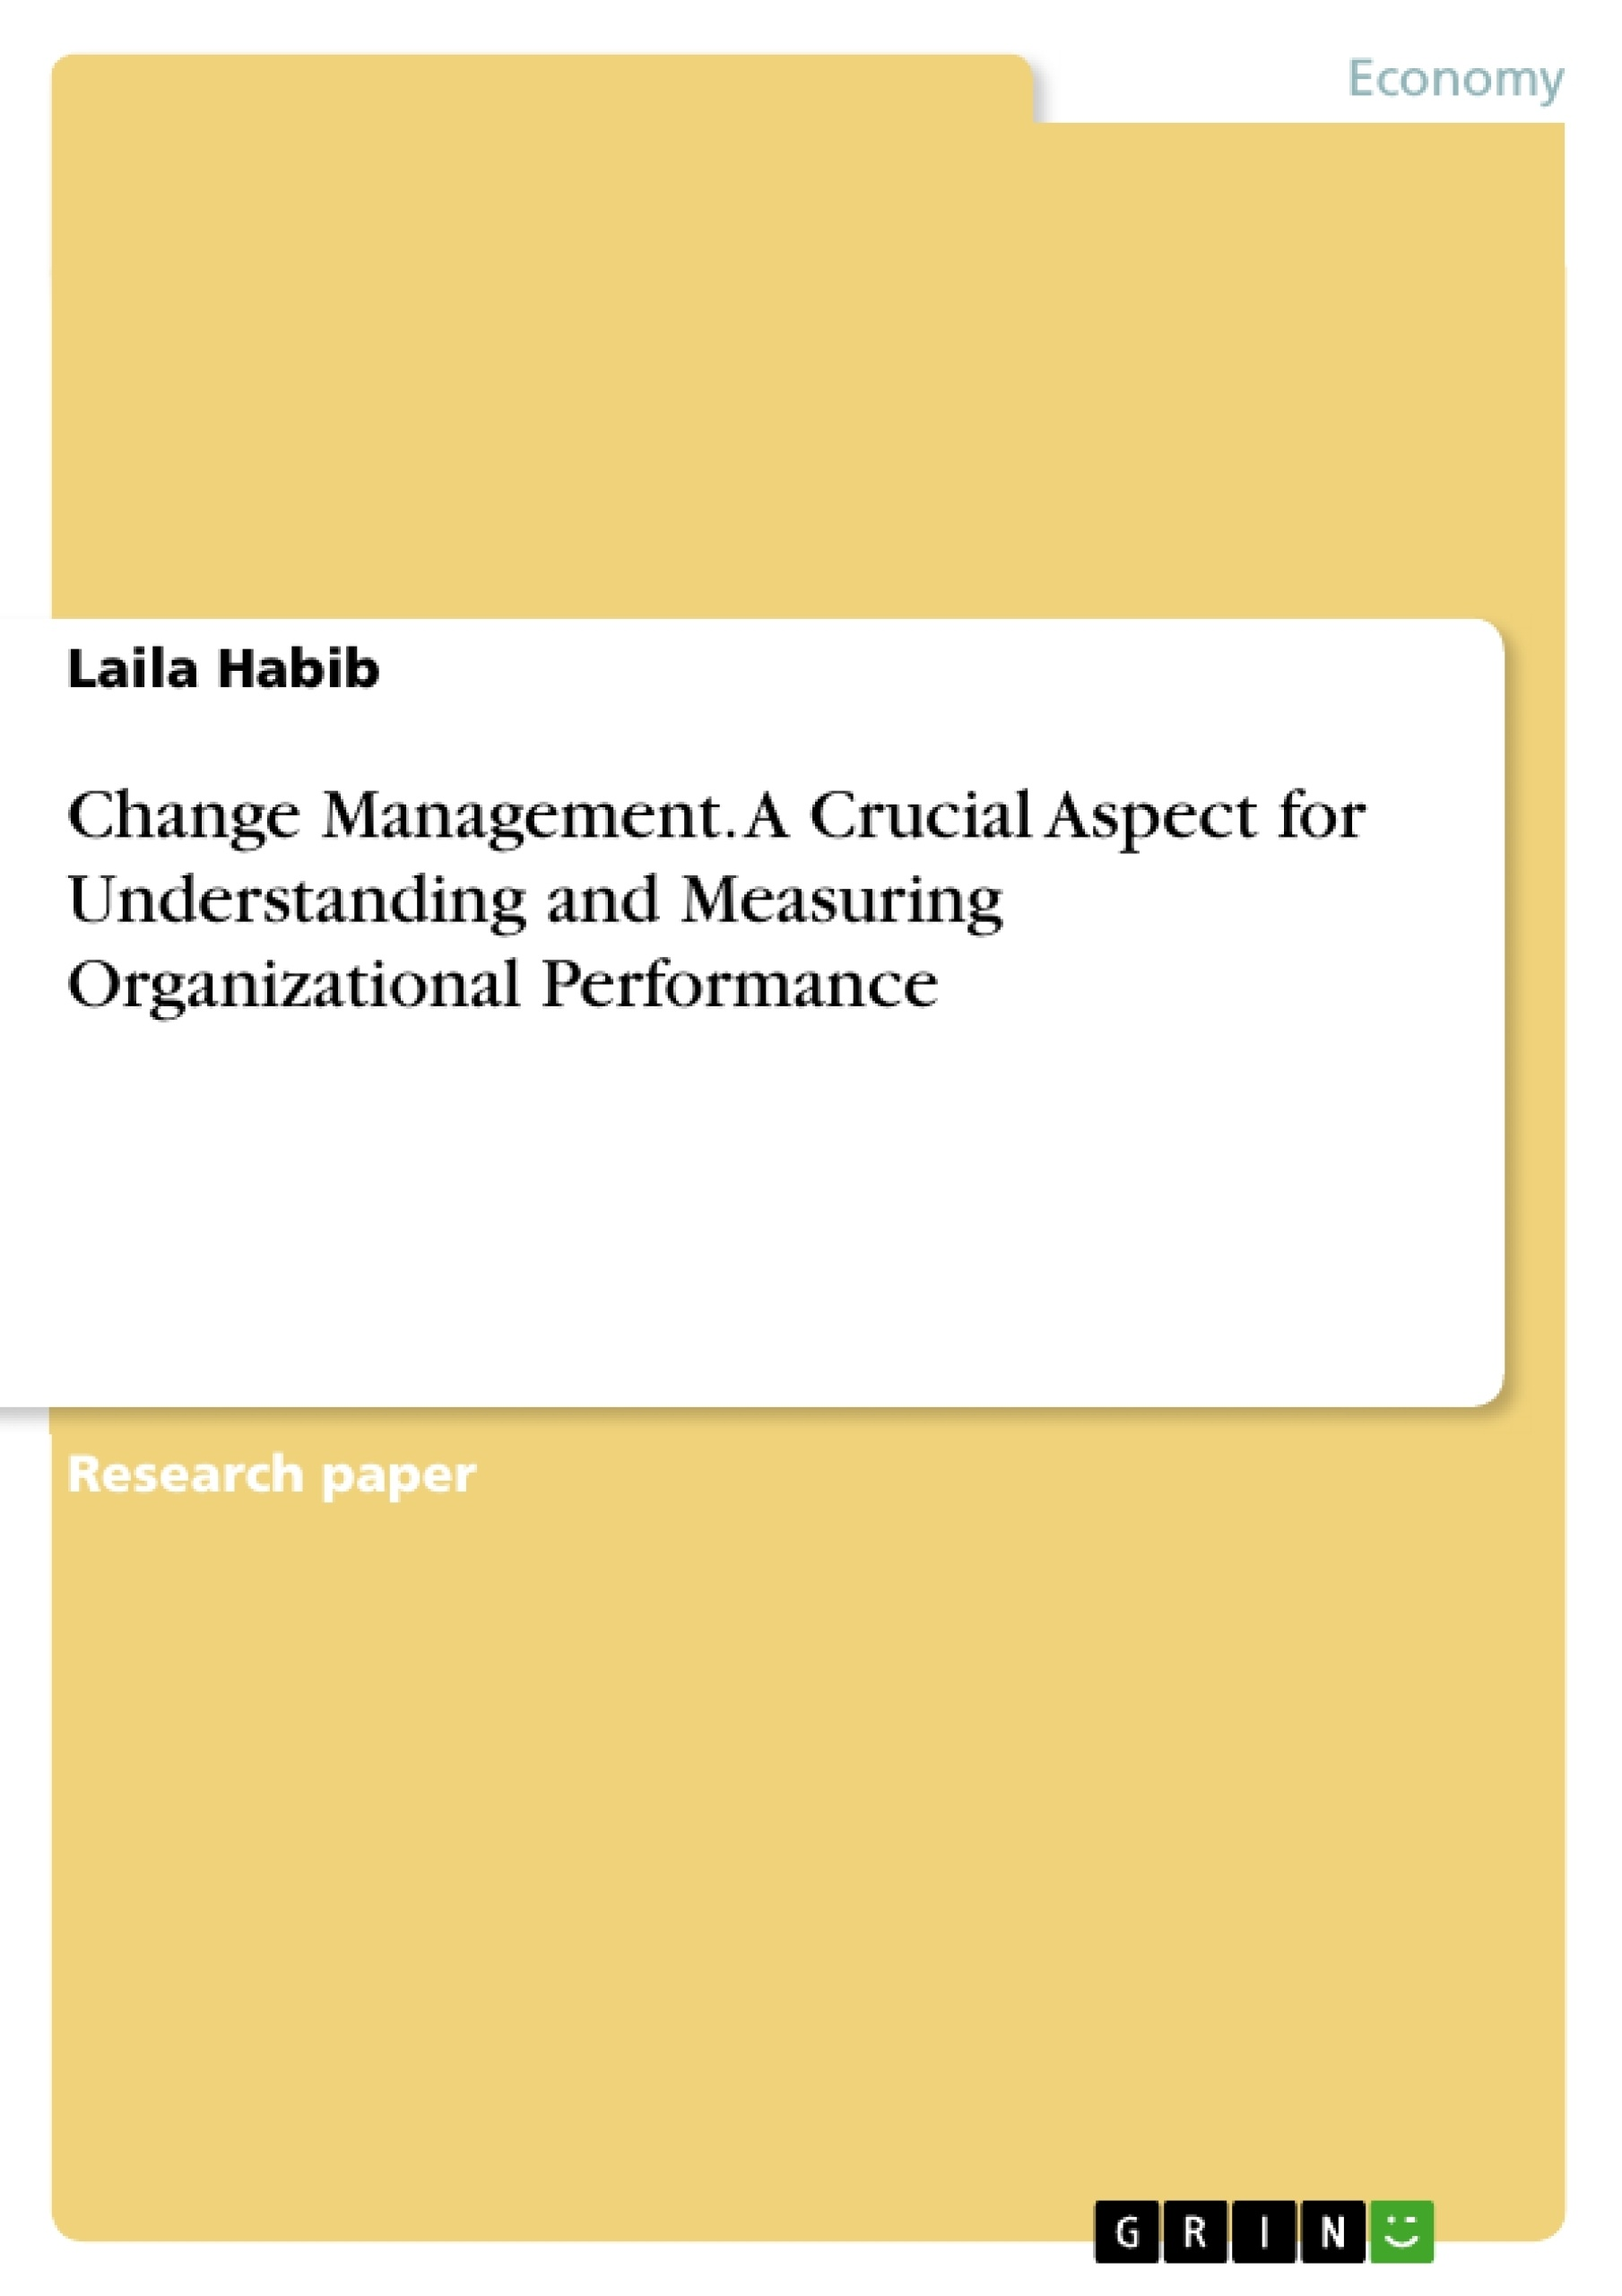 Title: Change Management. A Crucial Aspect for Understanding and Measuring Organizational Performance